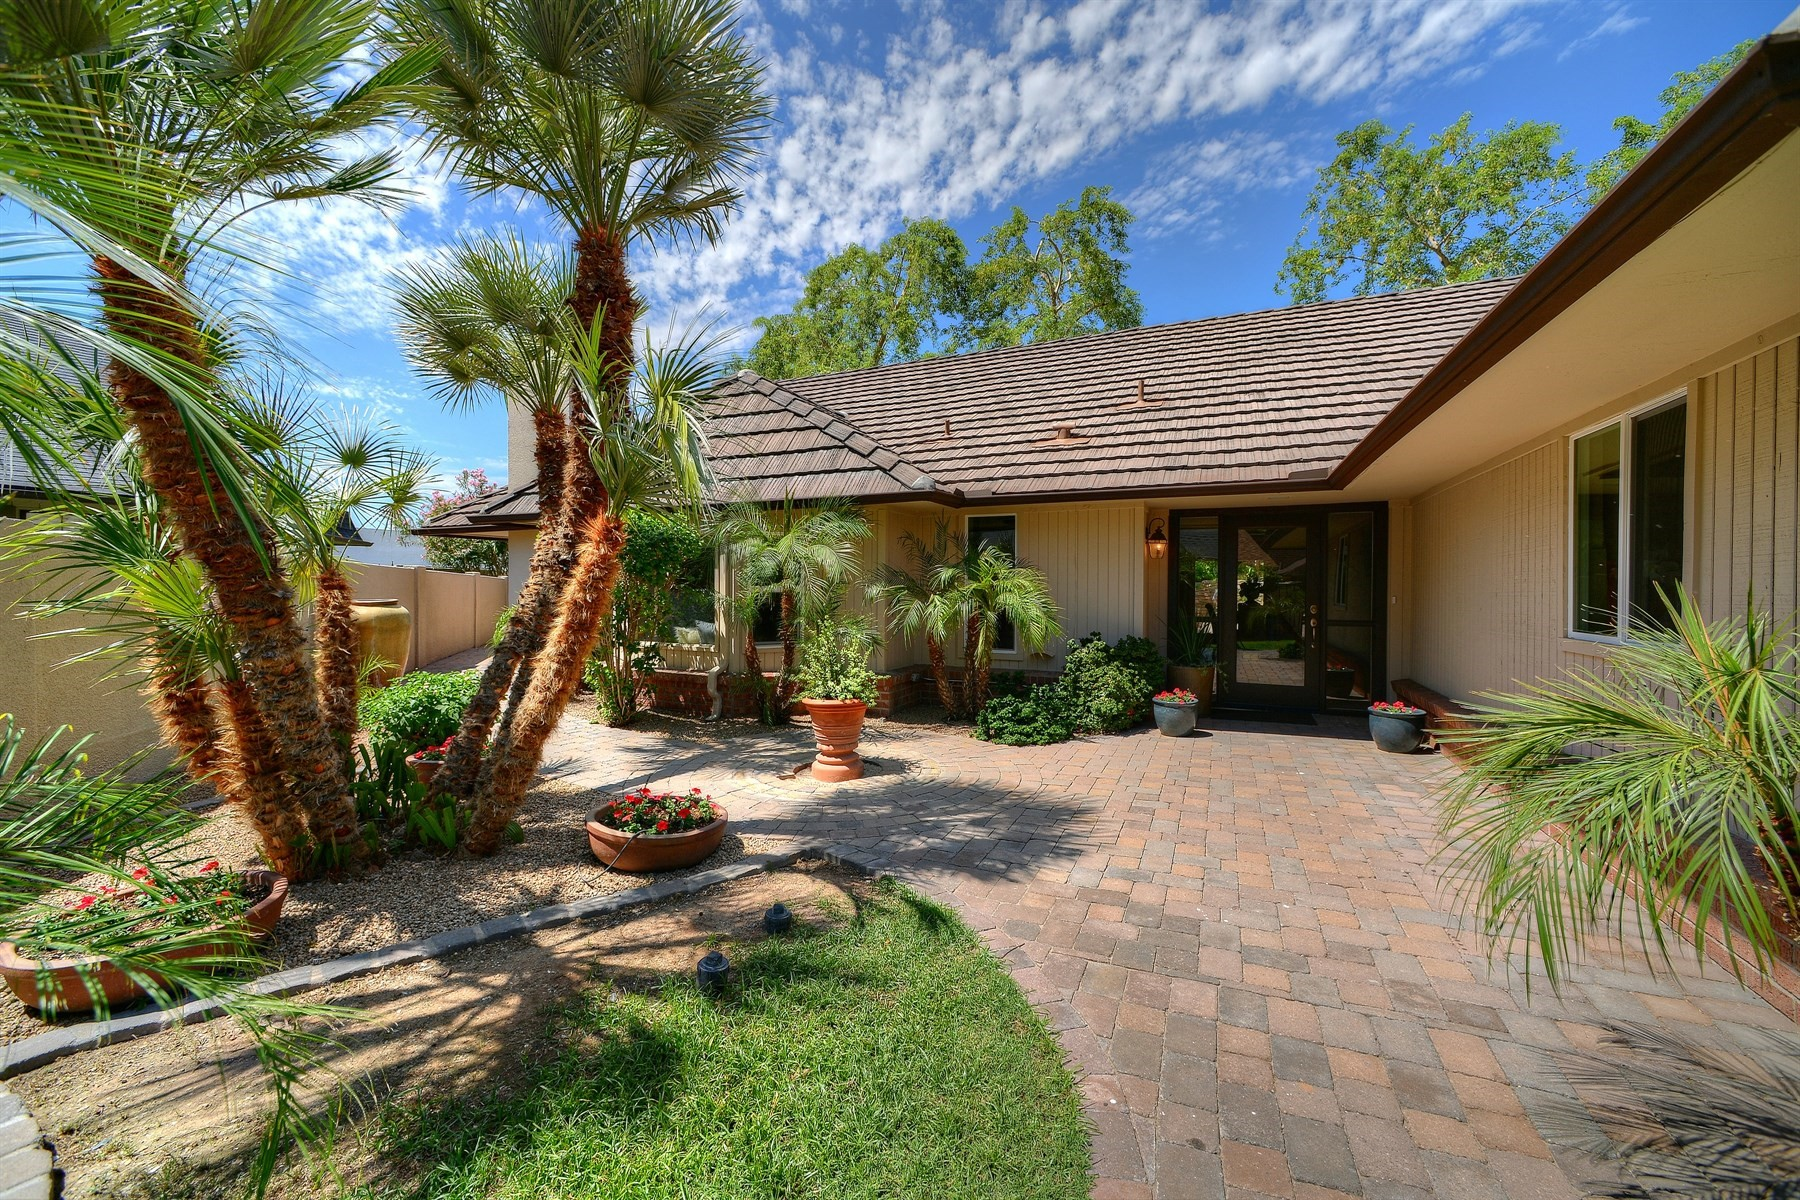 Single Family Home for Sale at Beautiful home located in the serene community of Town and Country 2125 E Pasadena Ave Phoenix, Arizona, 85016 United States